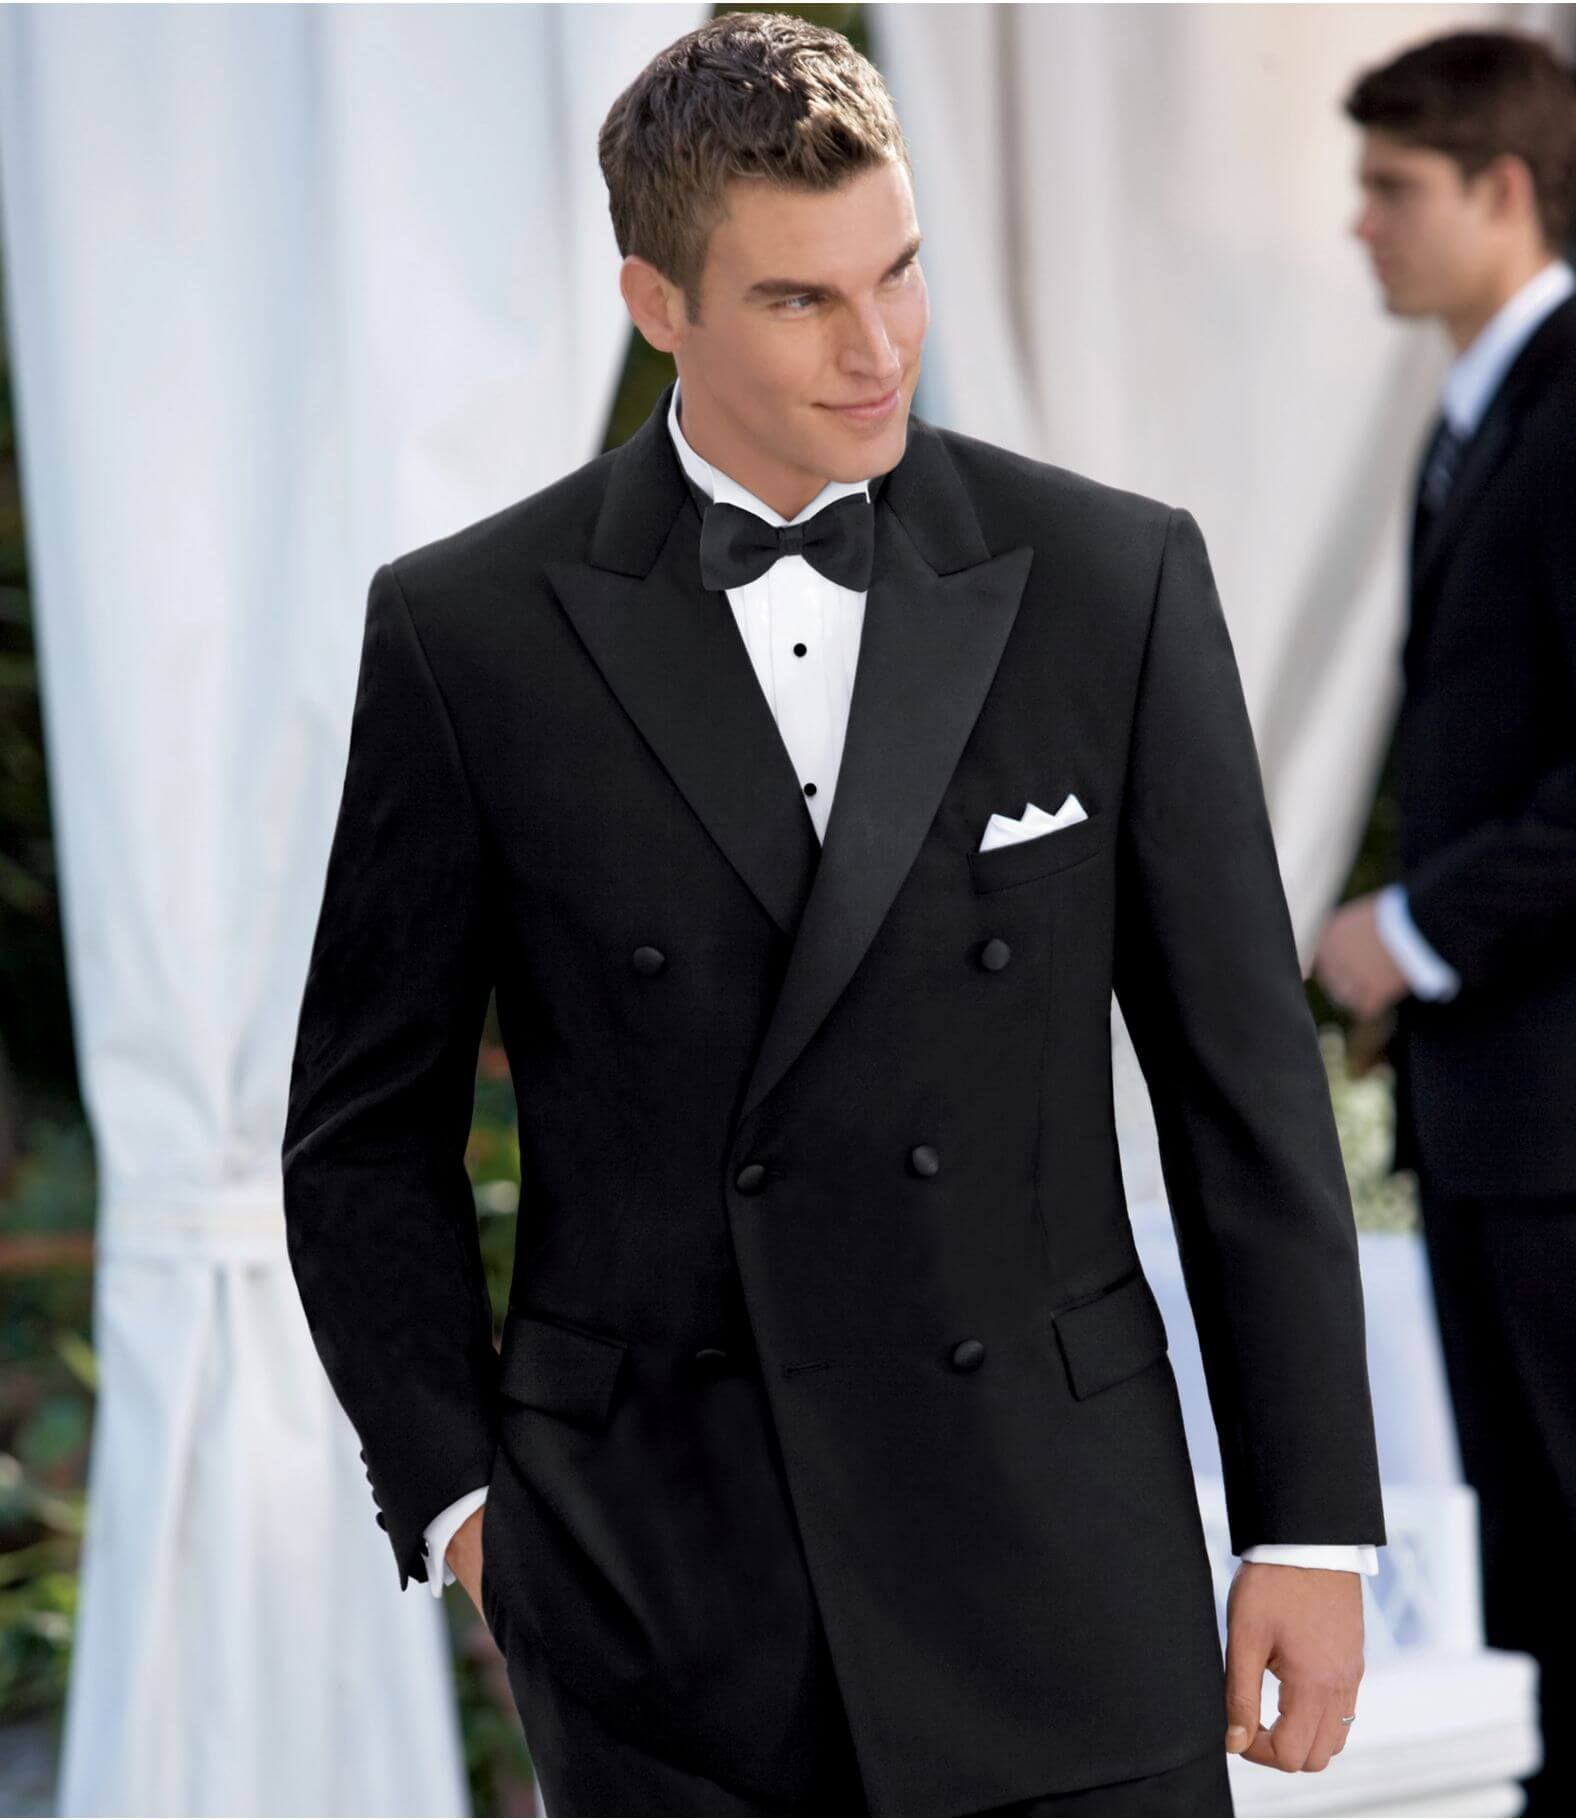 Mens Double Breasted Suit for Men | Men's stylish dresses ...